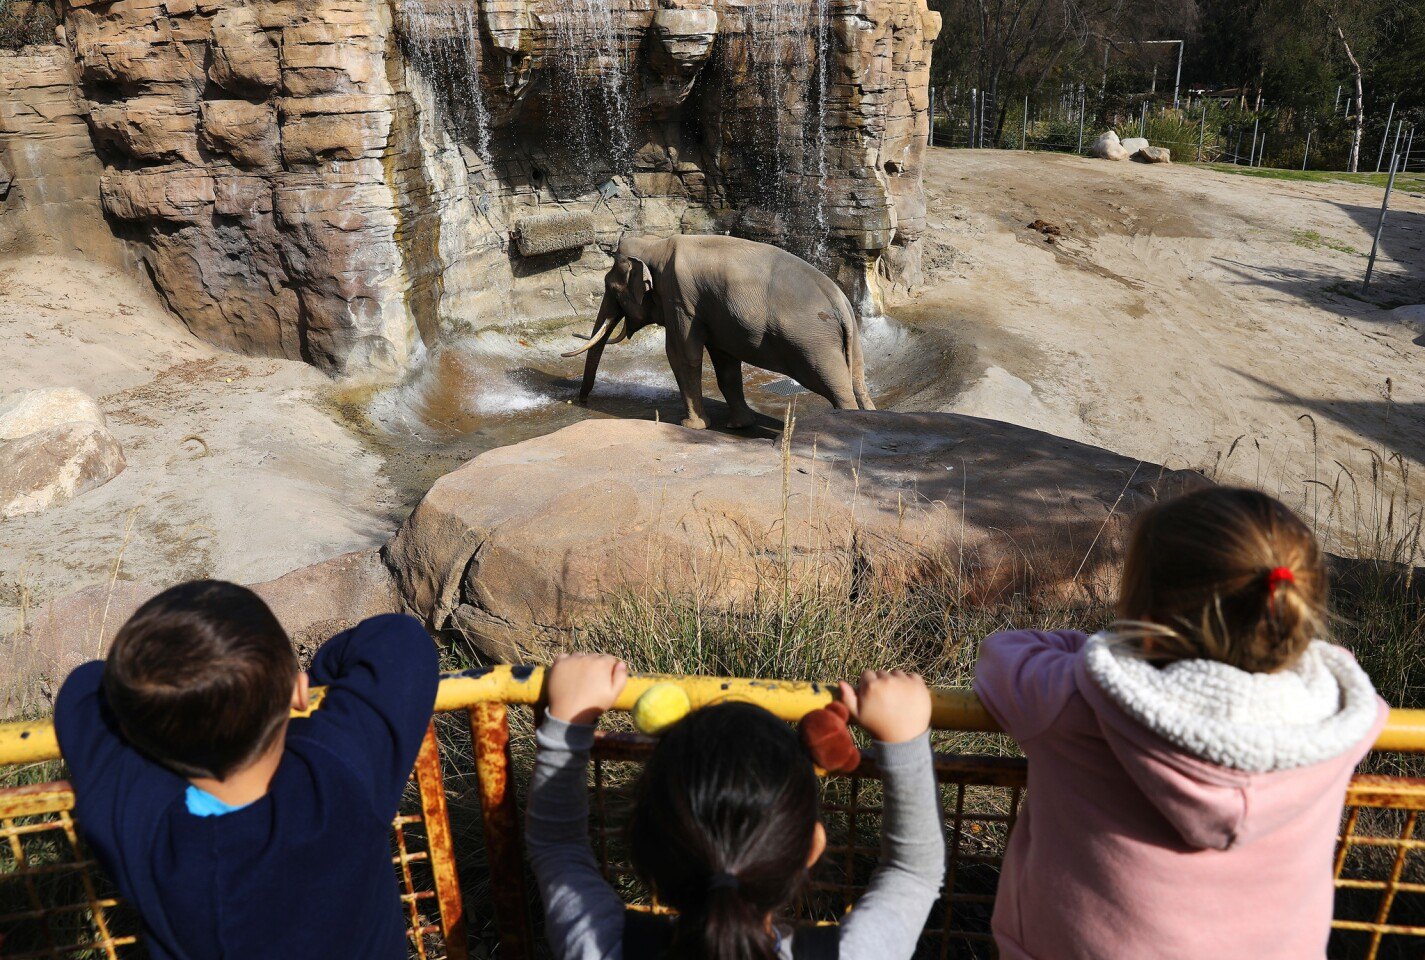 Billy the elephant in his enclosure at the Los Angeles Zoo. L.A. City Councilmen Paul Koretz and Mitch O'Farrell want the 32-year-old elephant moved to a sanctuary.